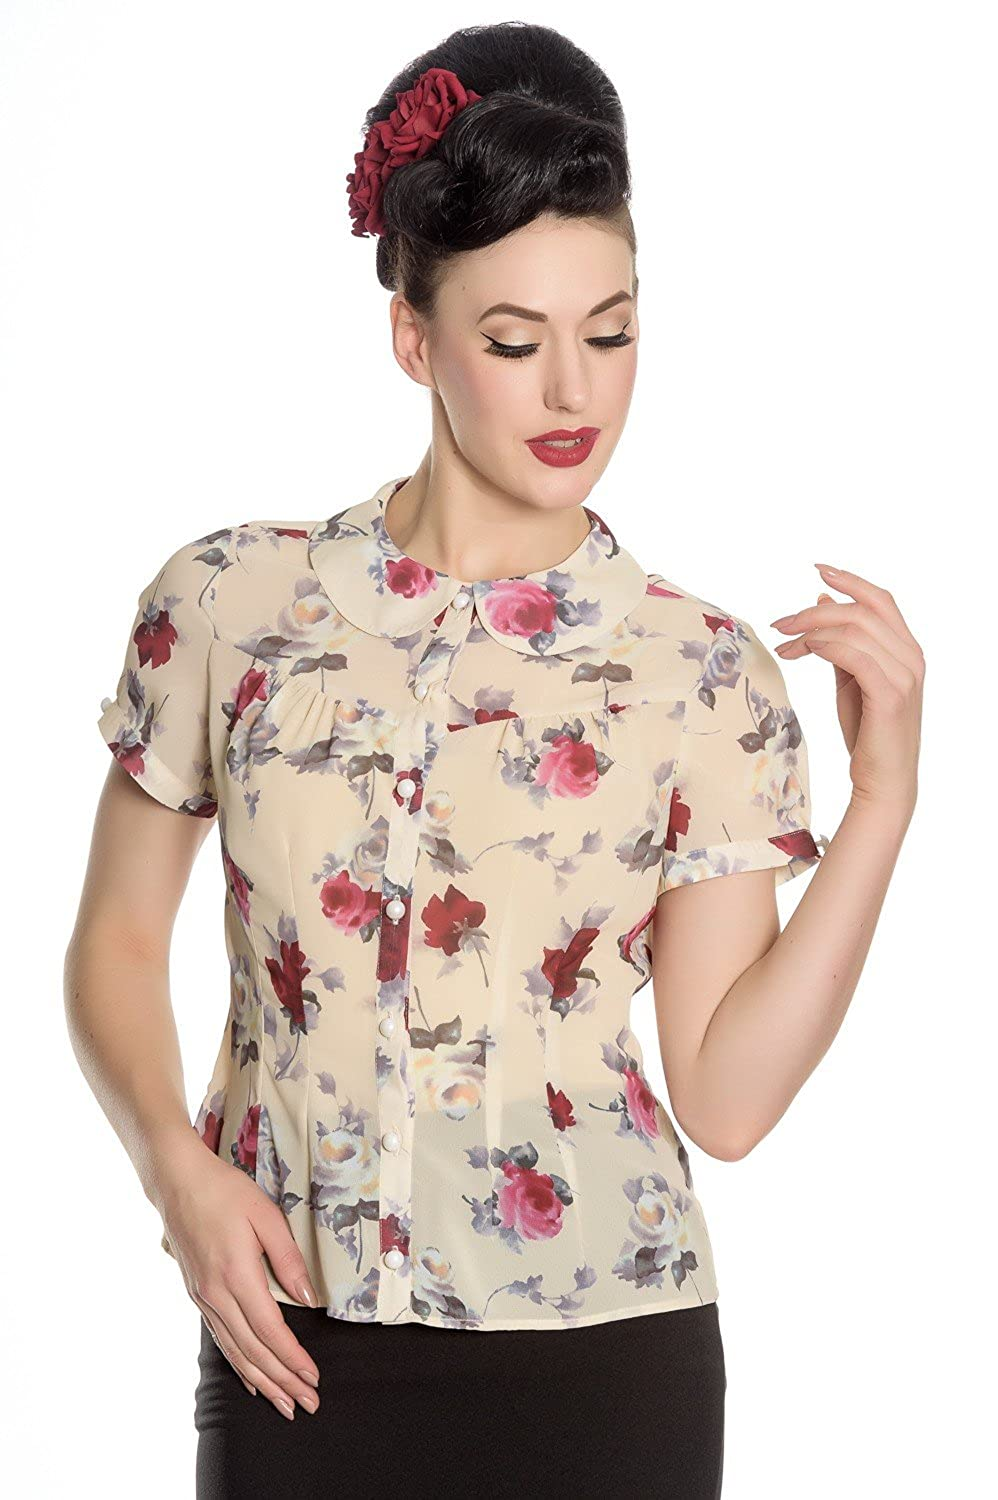 1940s Blouses and Tops Hell Bunny Flowers Rosemary Vintage Retro 40s 50s Leah Blouse Floral Top Shirt $34.99 AT vintagedancer.com